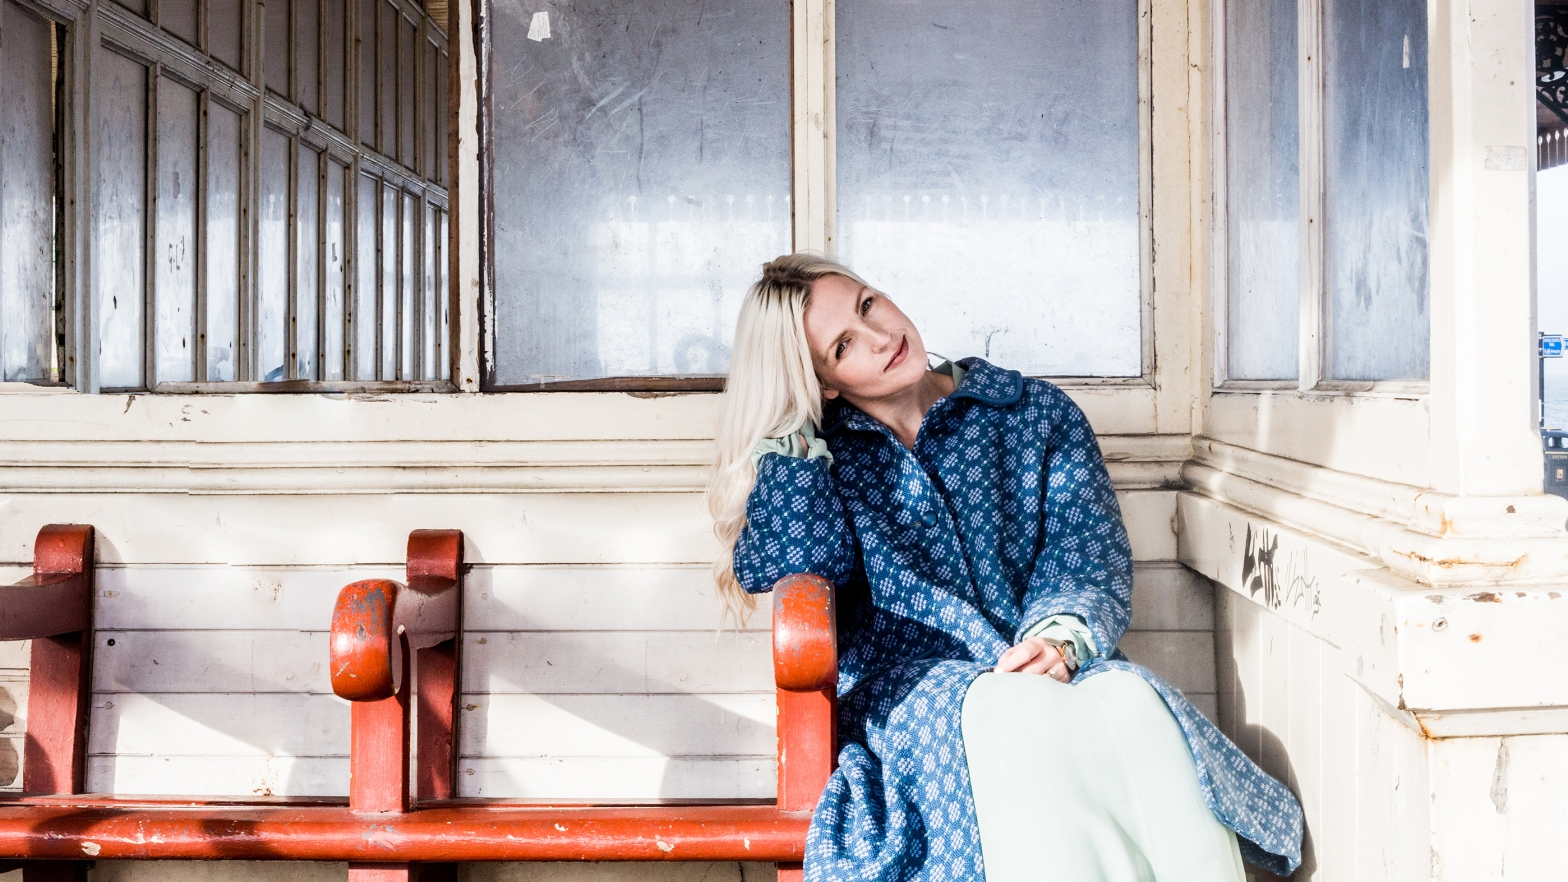 photo of Jenefer Odell sitting on a bench, wearing a blue coat and smiling